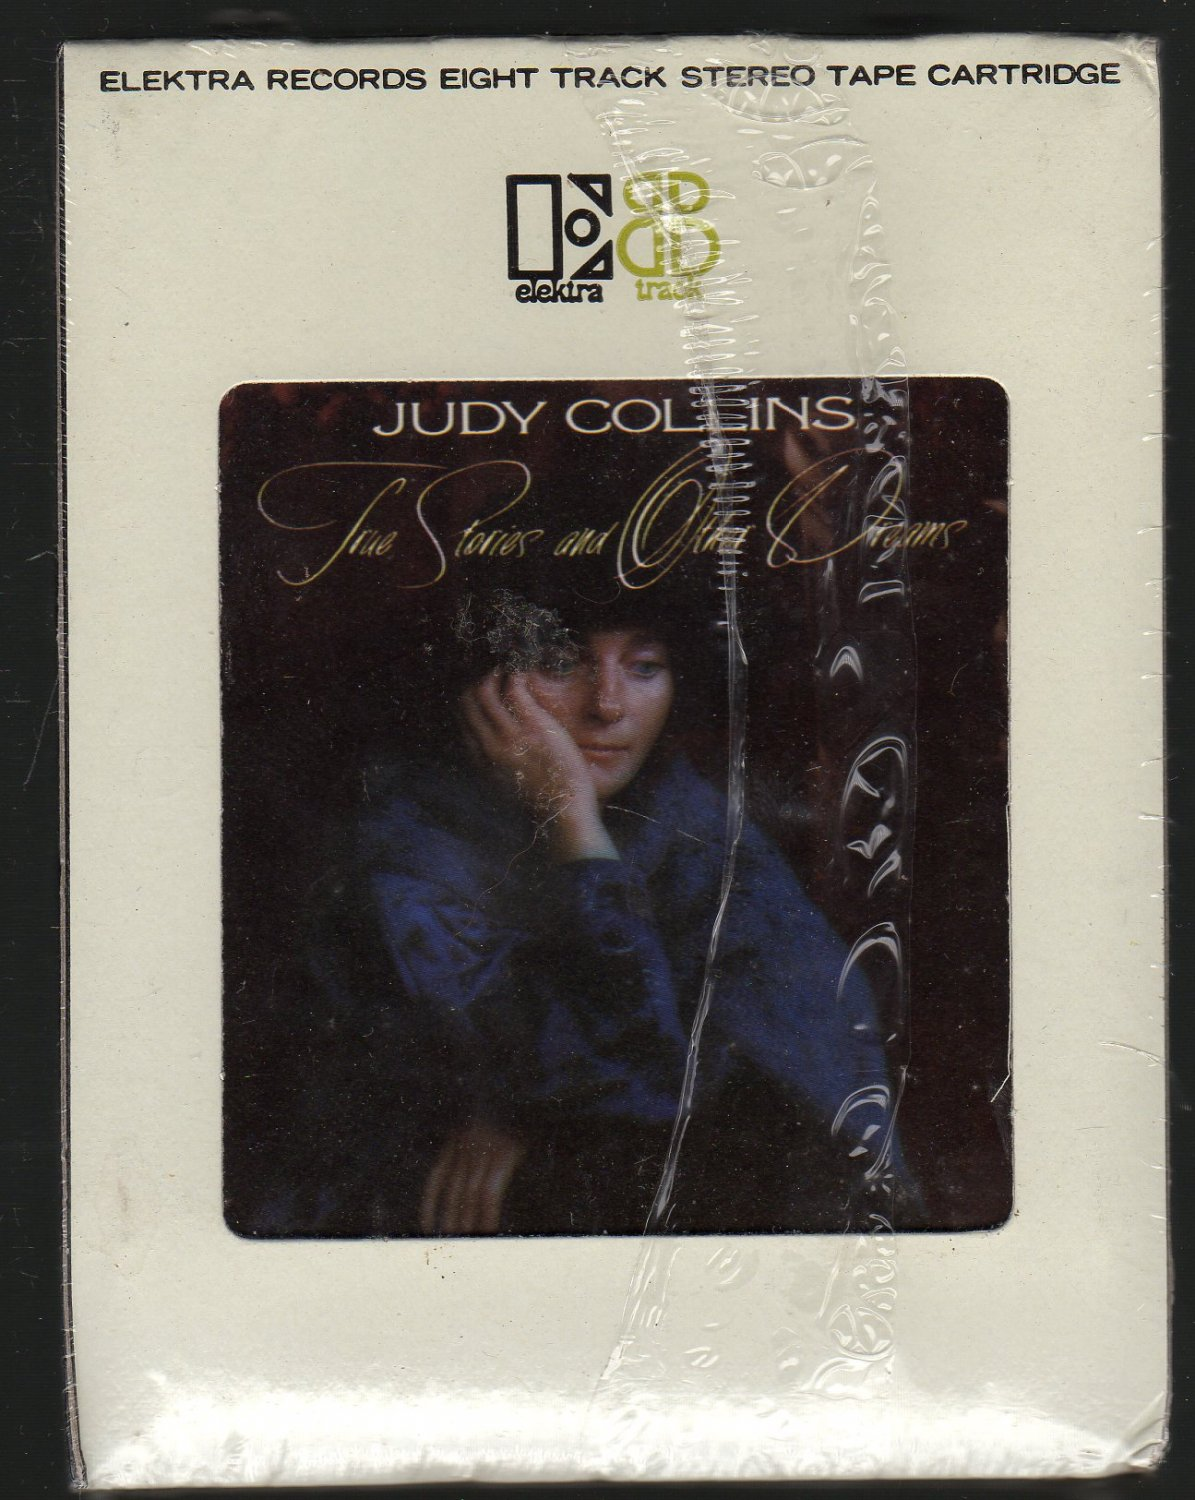 Judy Collins - True Stories And Other Dreams Sealed 8-track tape